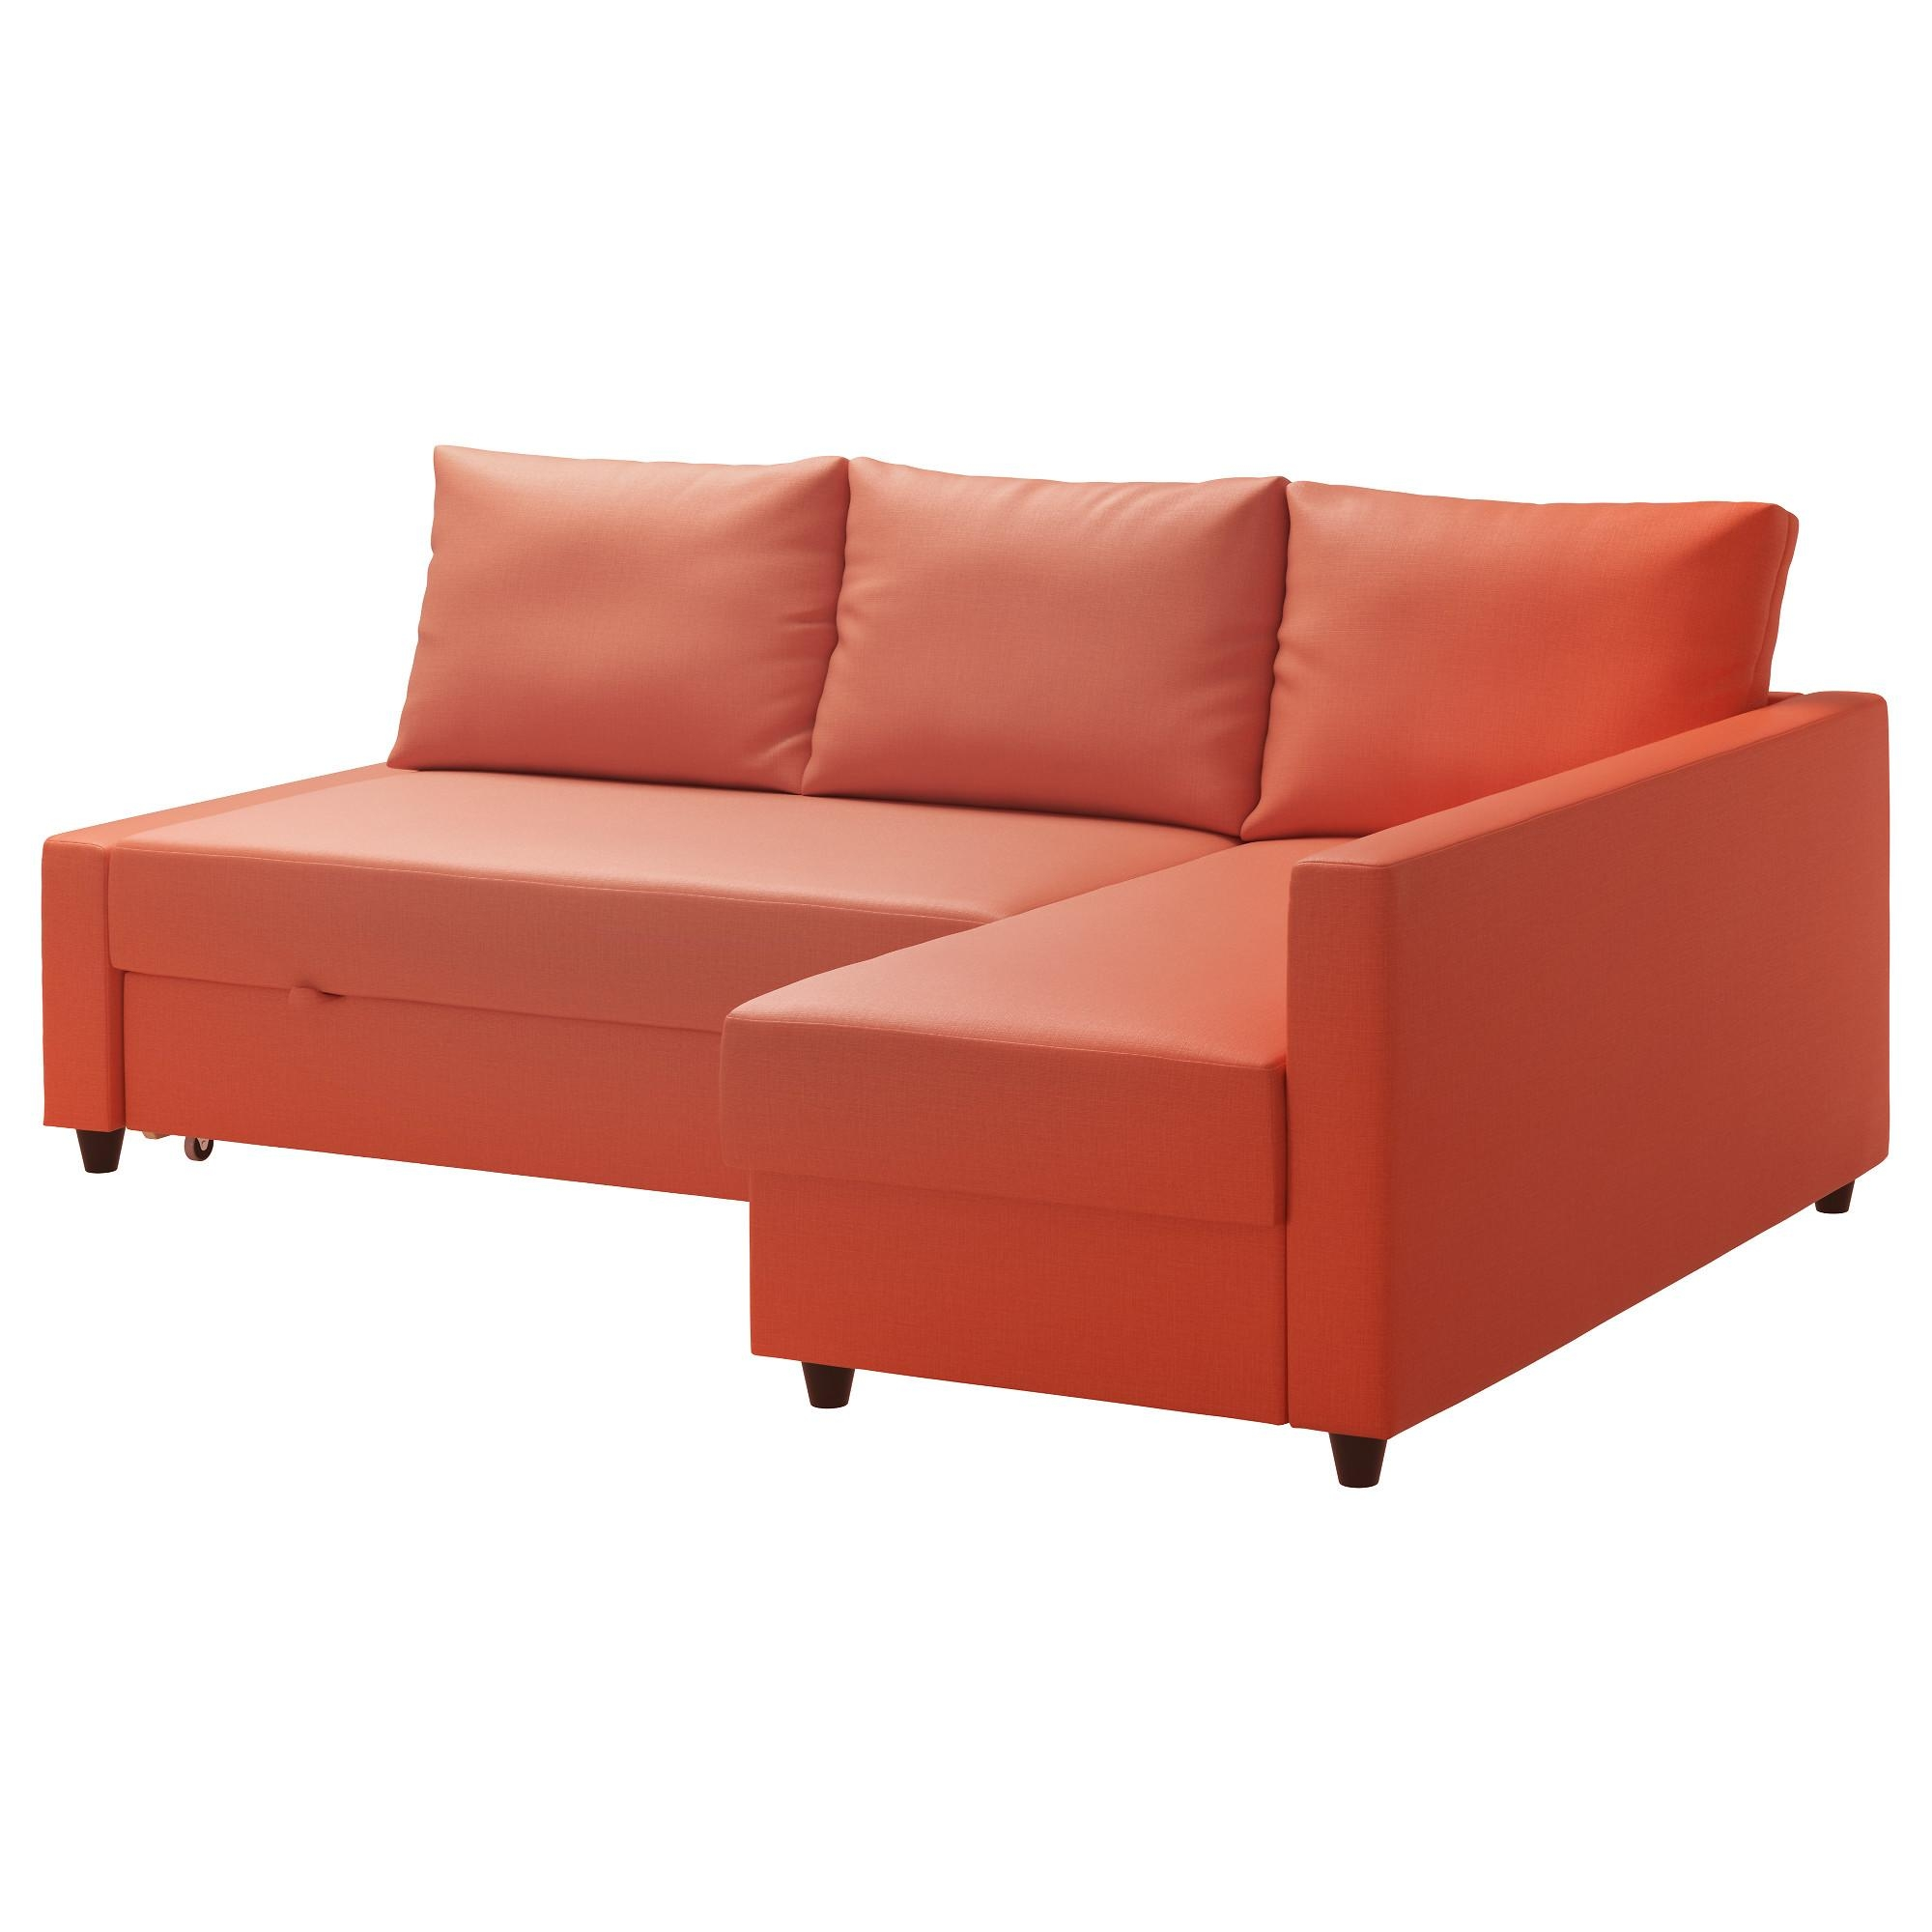 Friheten Corner Sofa Bed With Storage – Skiftebo Dark Orange – Ikea Regarding Orange Ikea Sofas (Image 4 of 20)